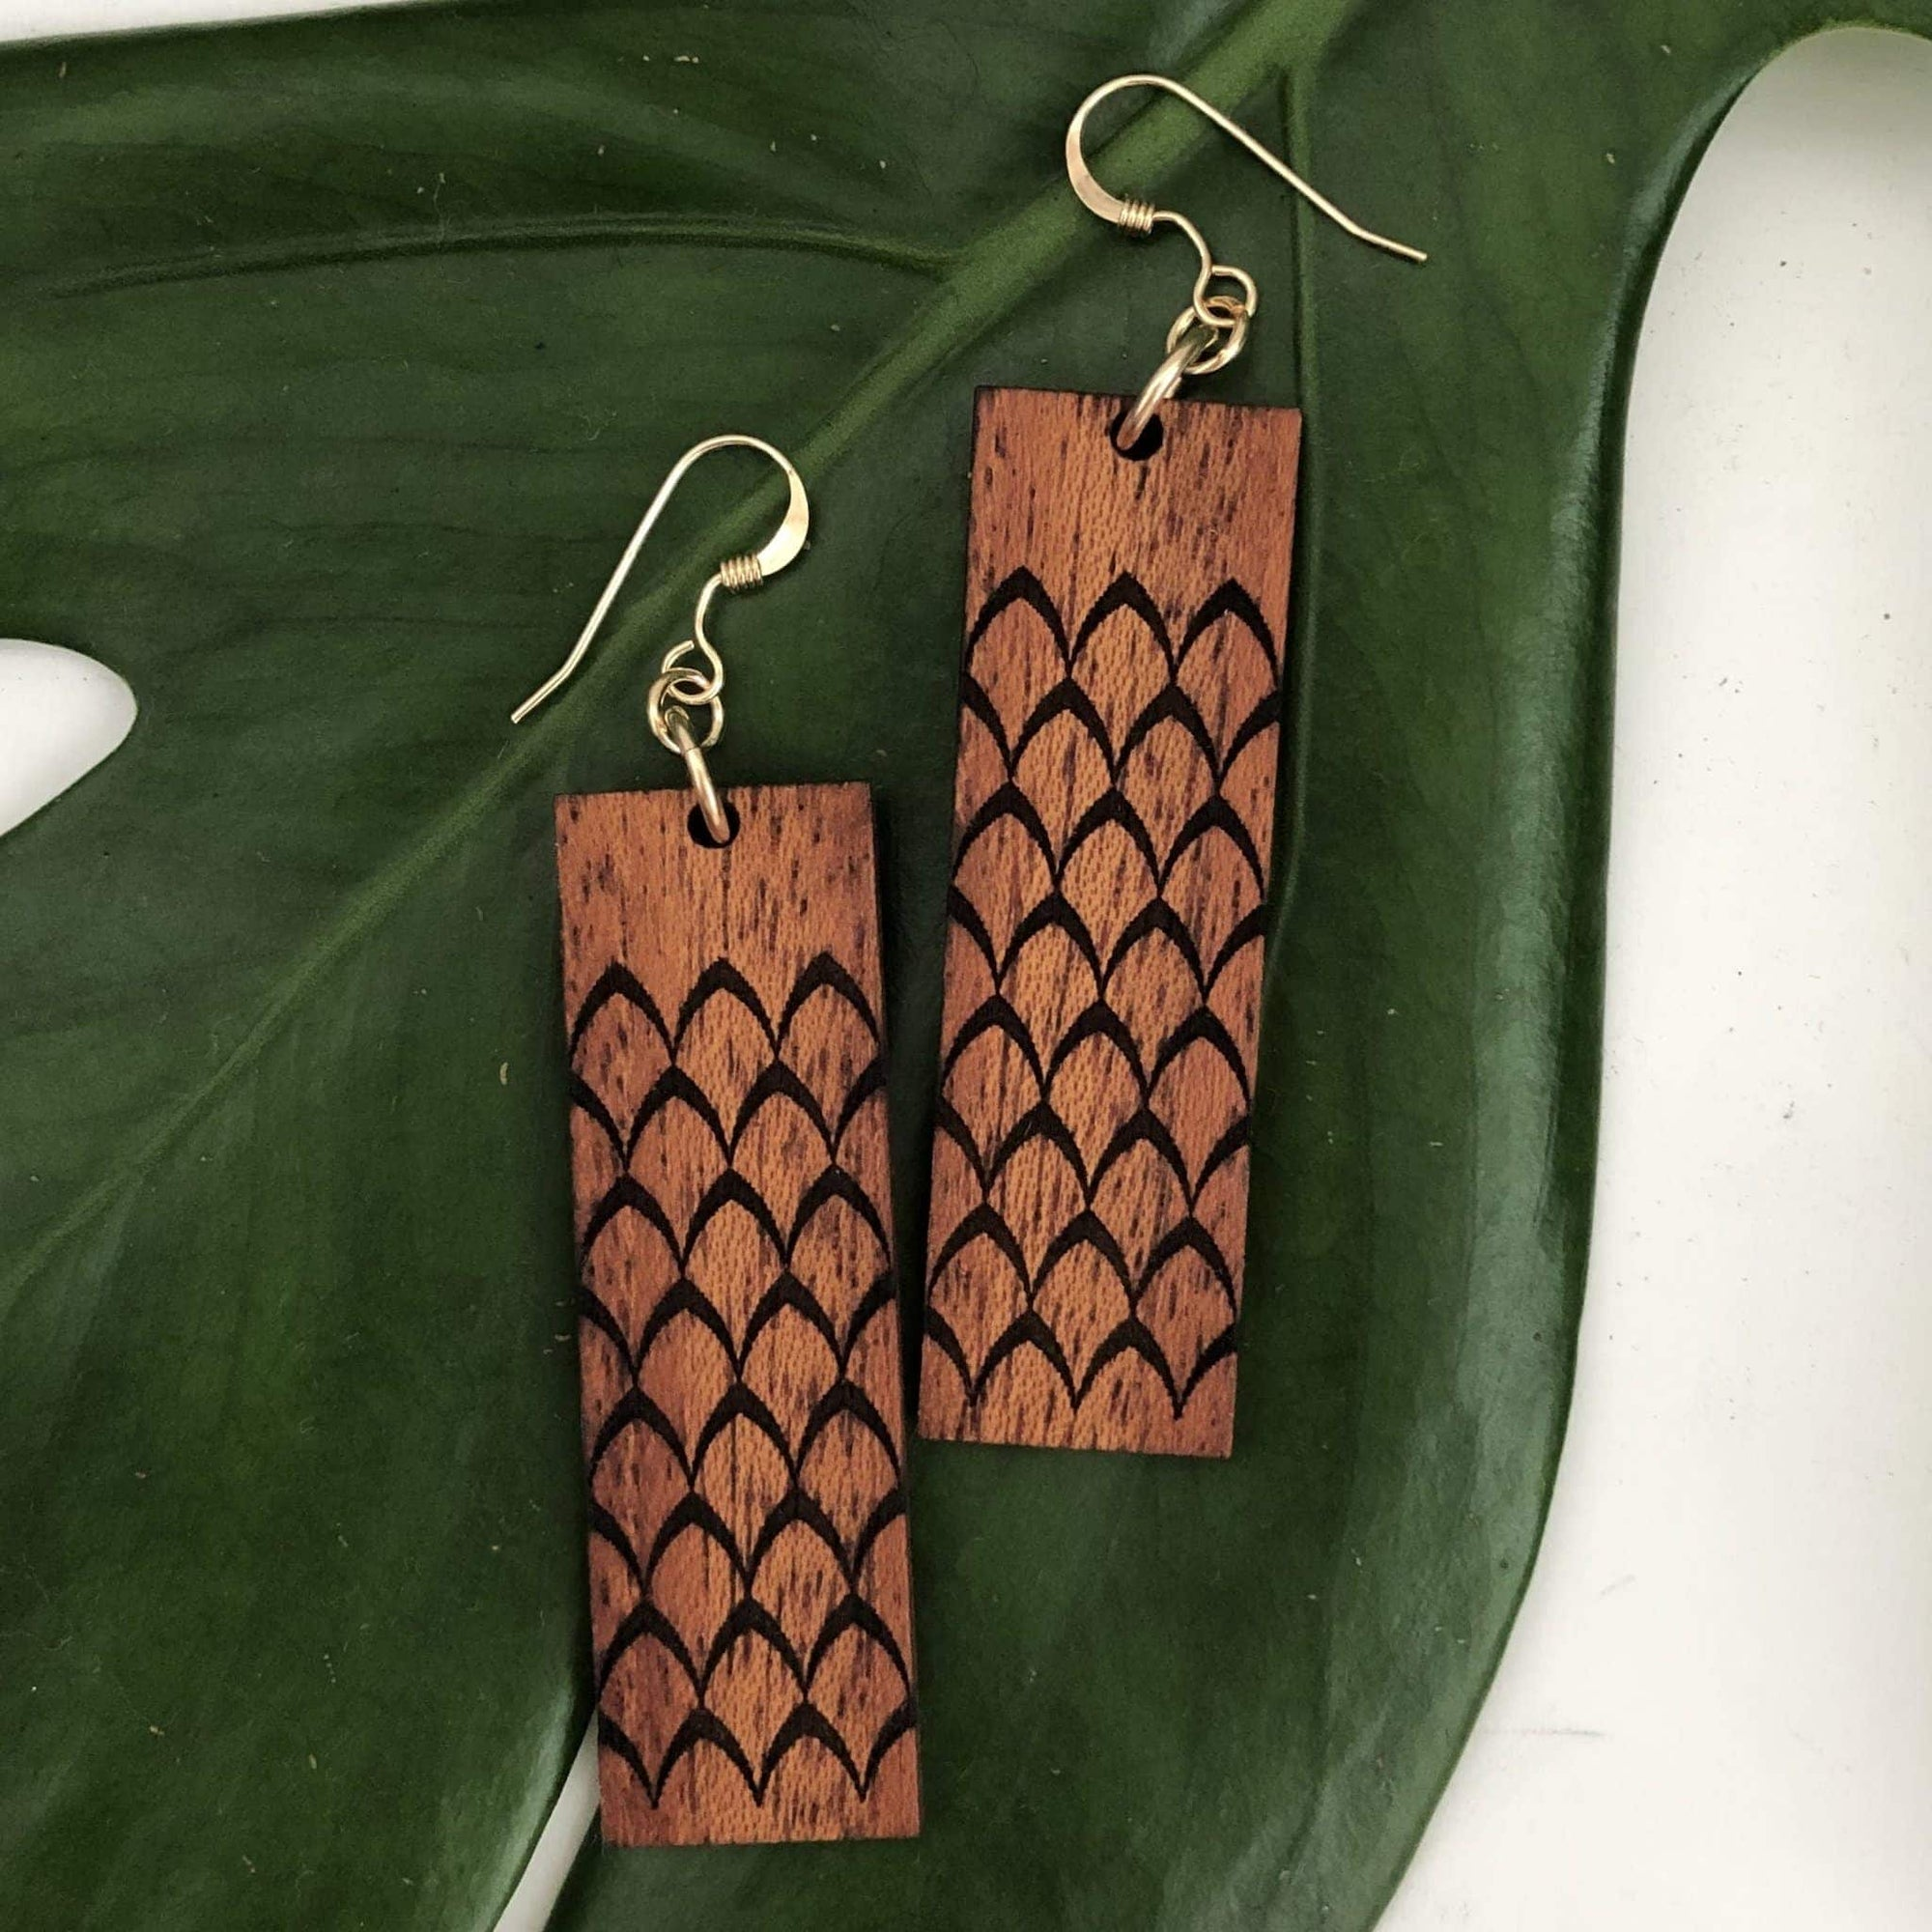 Ahu 'ula Hawaiian Koa Wood - 14k Gold Filled Earrings